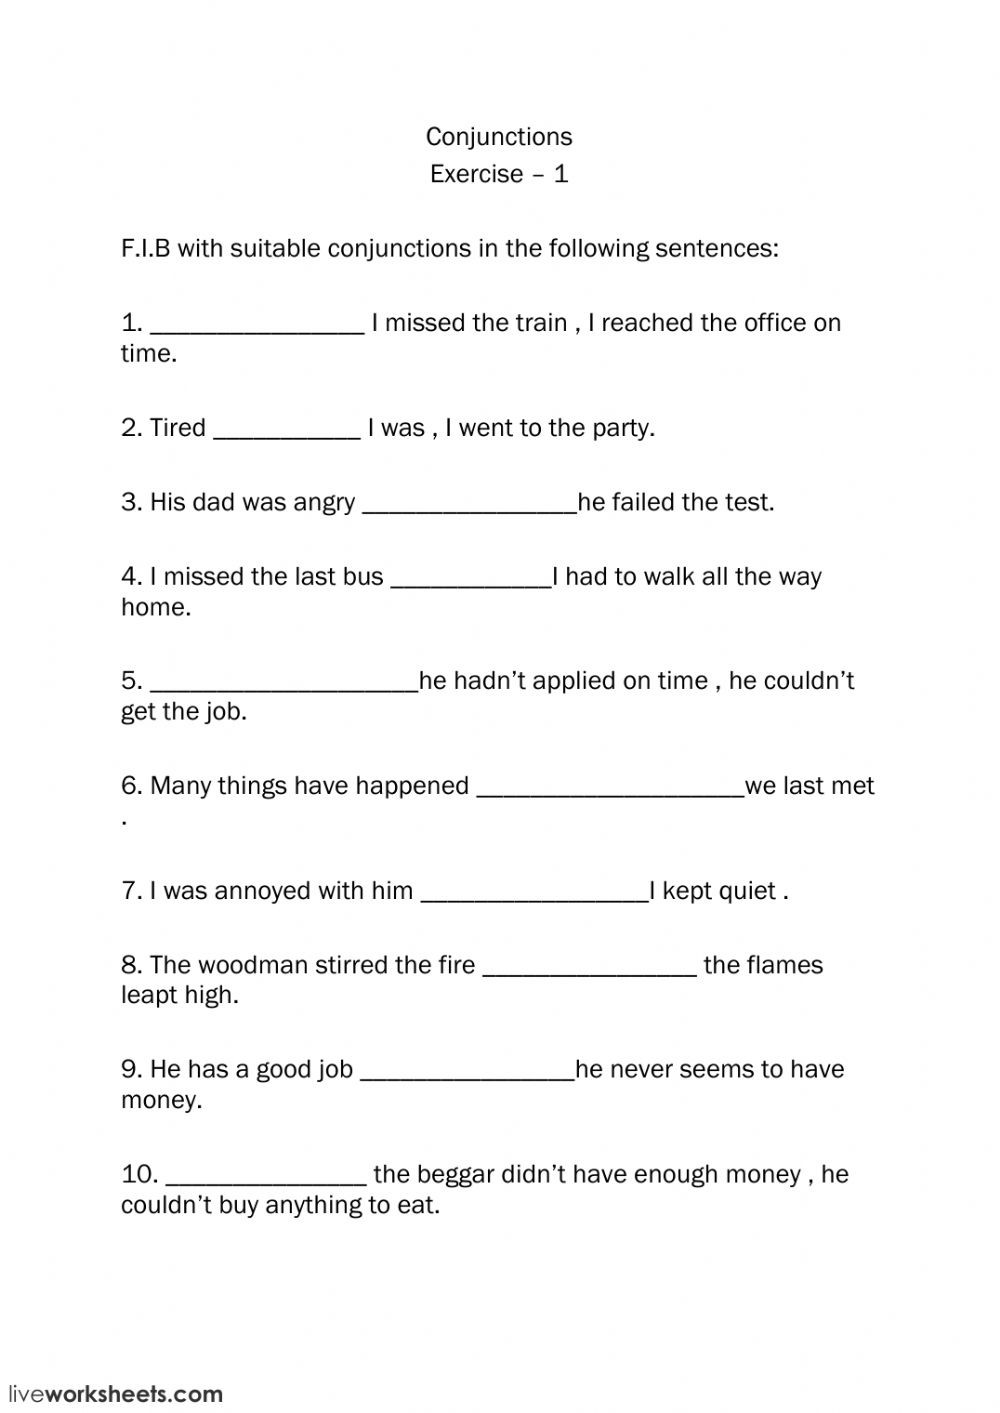 Conjunction Worksheets for Grade 3 Conjunctions Interactive Worksheet